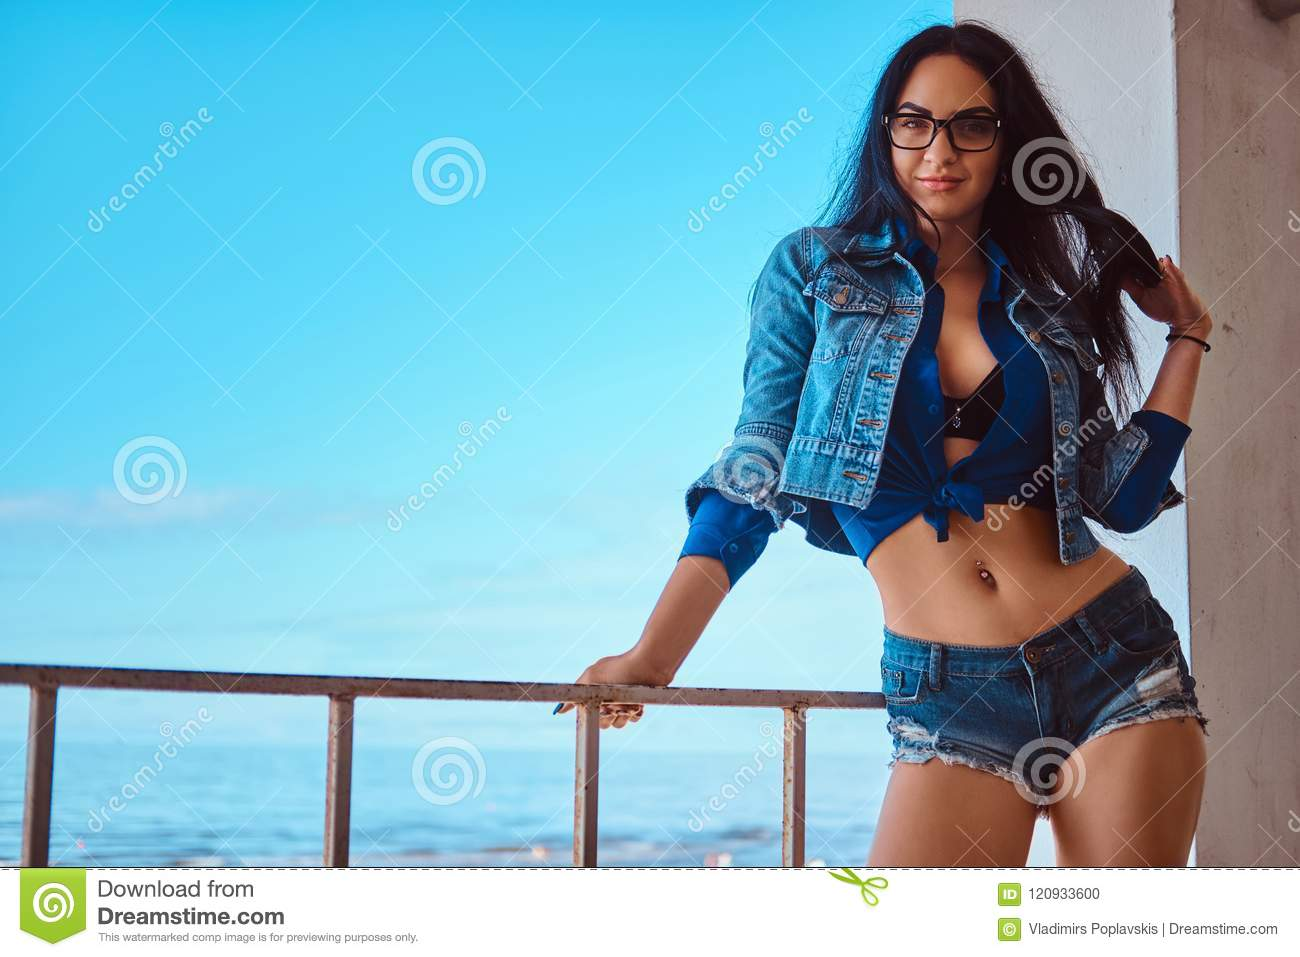 Seductive Brunette Girl Wearing Short Shorts And Jeans Jacket Posing